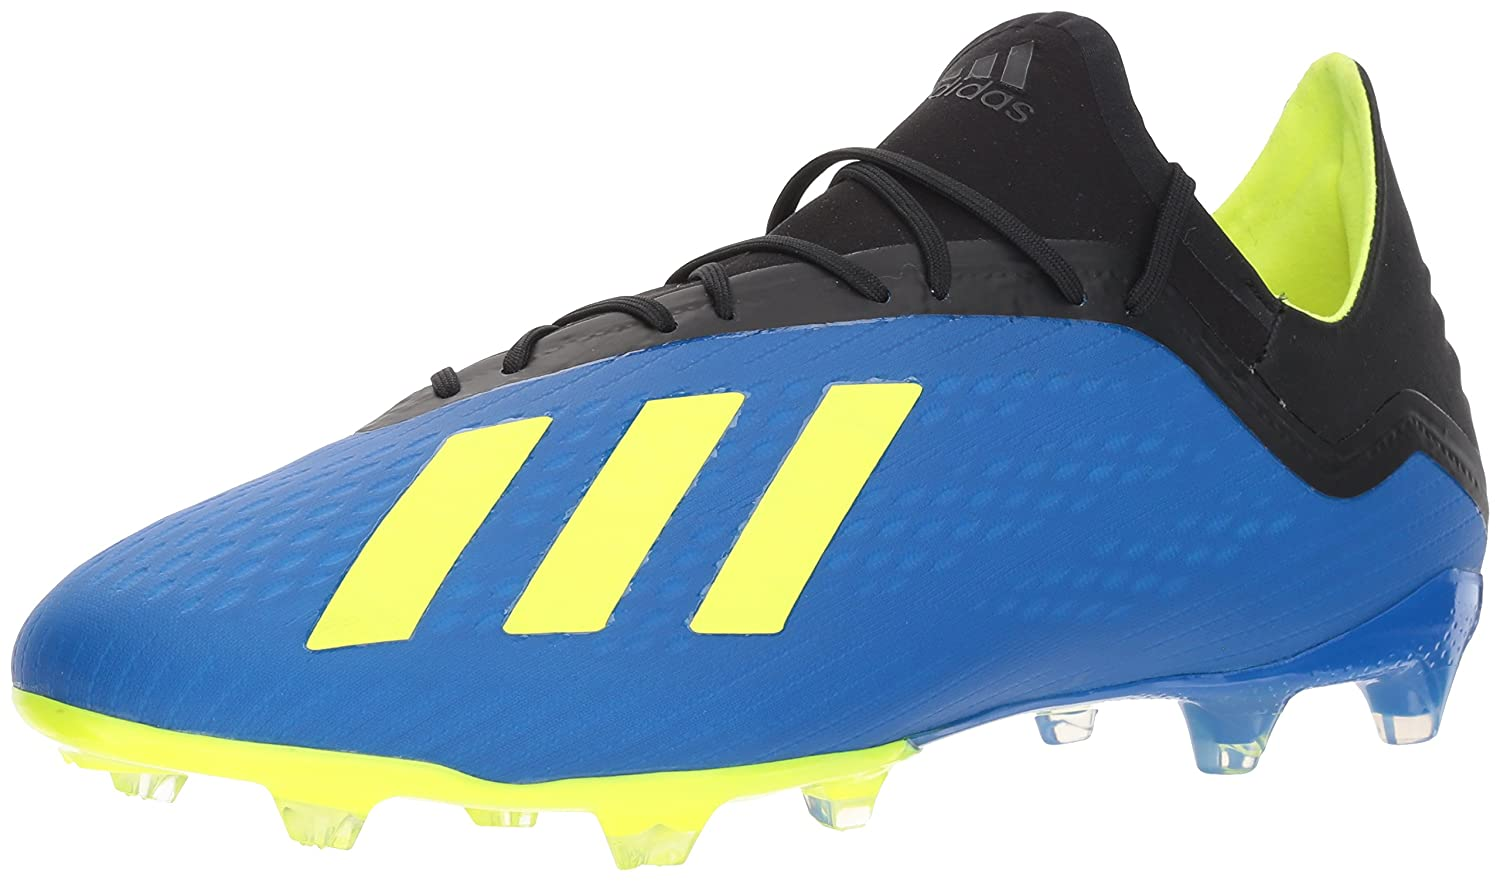 promo code to buy popular stores adidas Men's X 18.2 Firm Ground Soccer Shoe